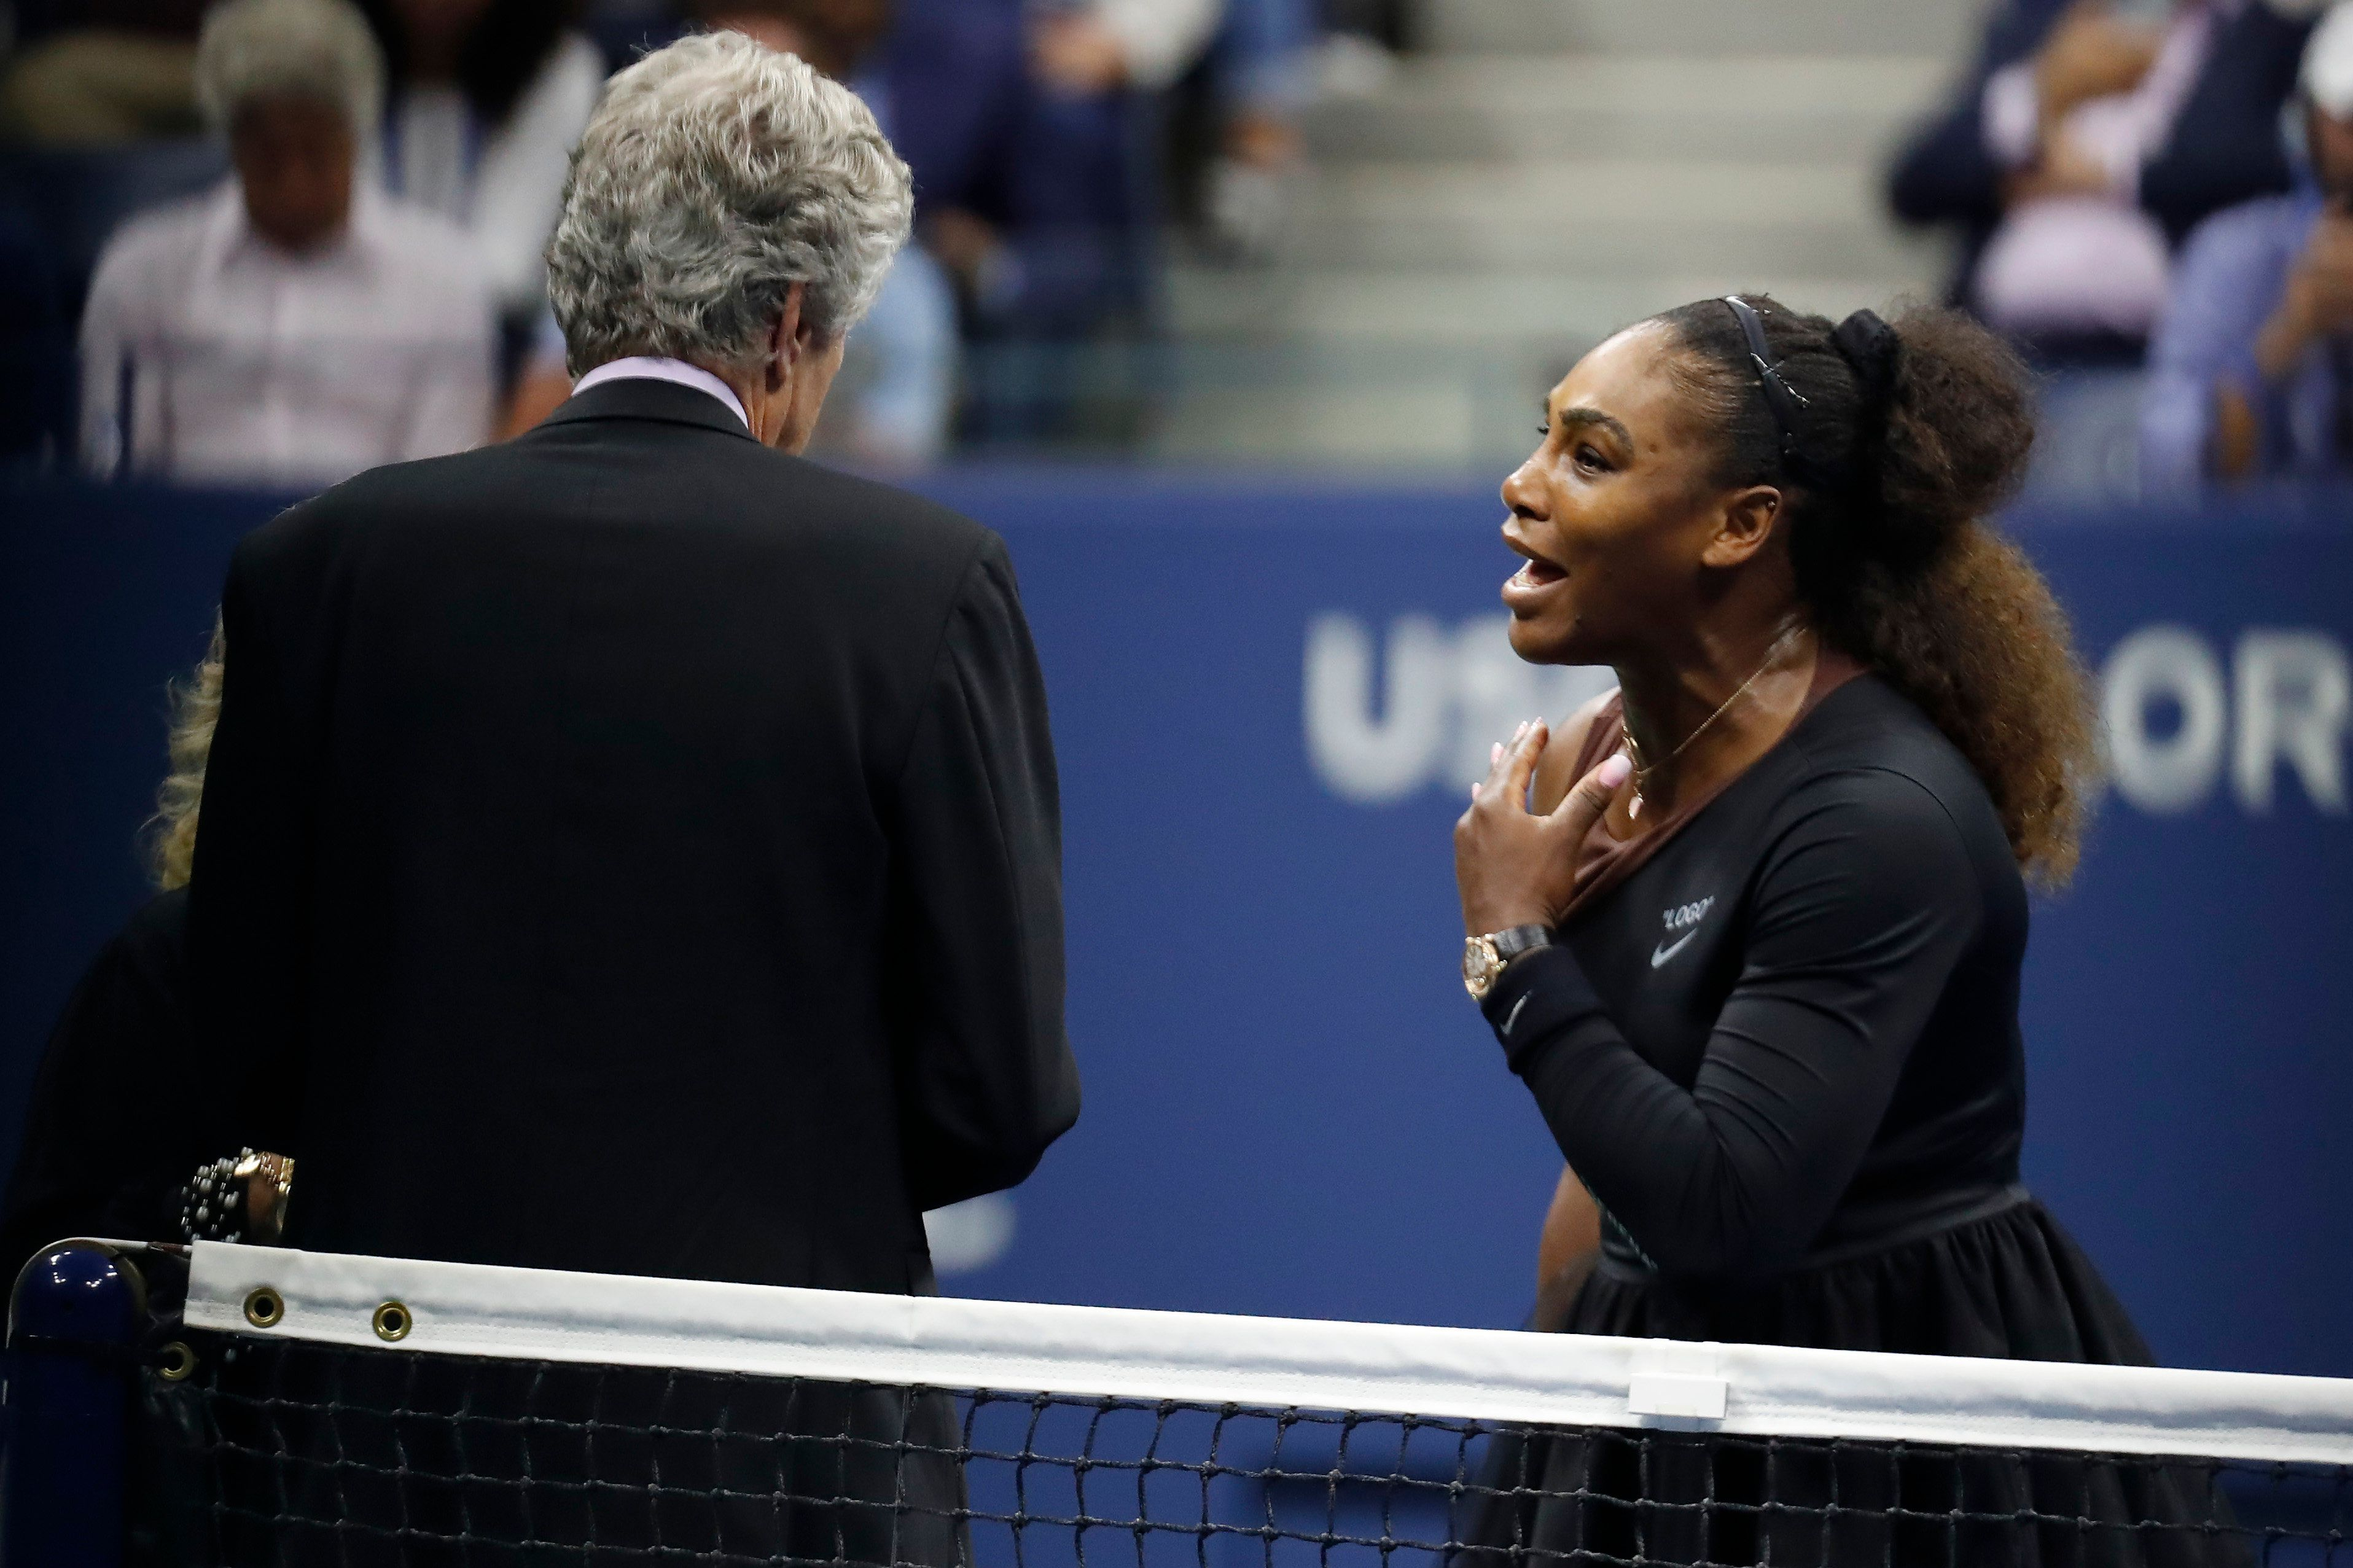 Sep 8, 2018; New York, NY, USA; Serena Williams of the United States argues with tournament referee Brian Earley (L) after being assessed a game penalty in her match against Naomi Osaka of Japan (not pictured) in the women's final on day thirteen of the 2018 U.S. Open tennis tournament at USTA Billie Jean King National Tennis Center. Mandatory Credit: Geoff Burke-USA TODAY Sports